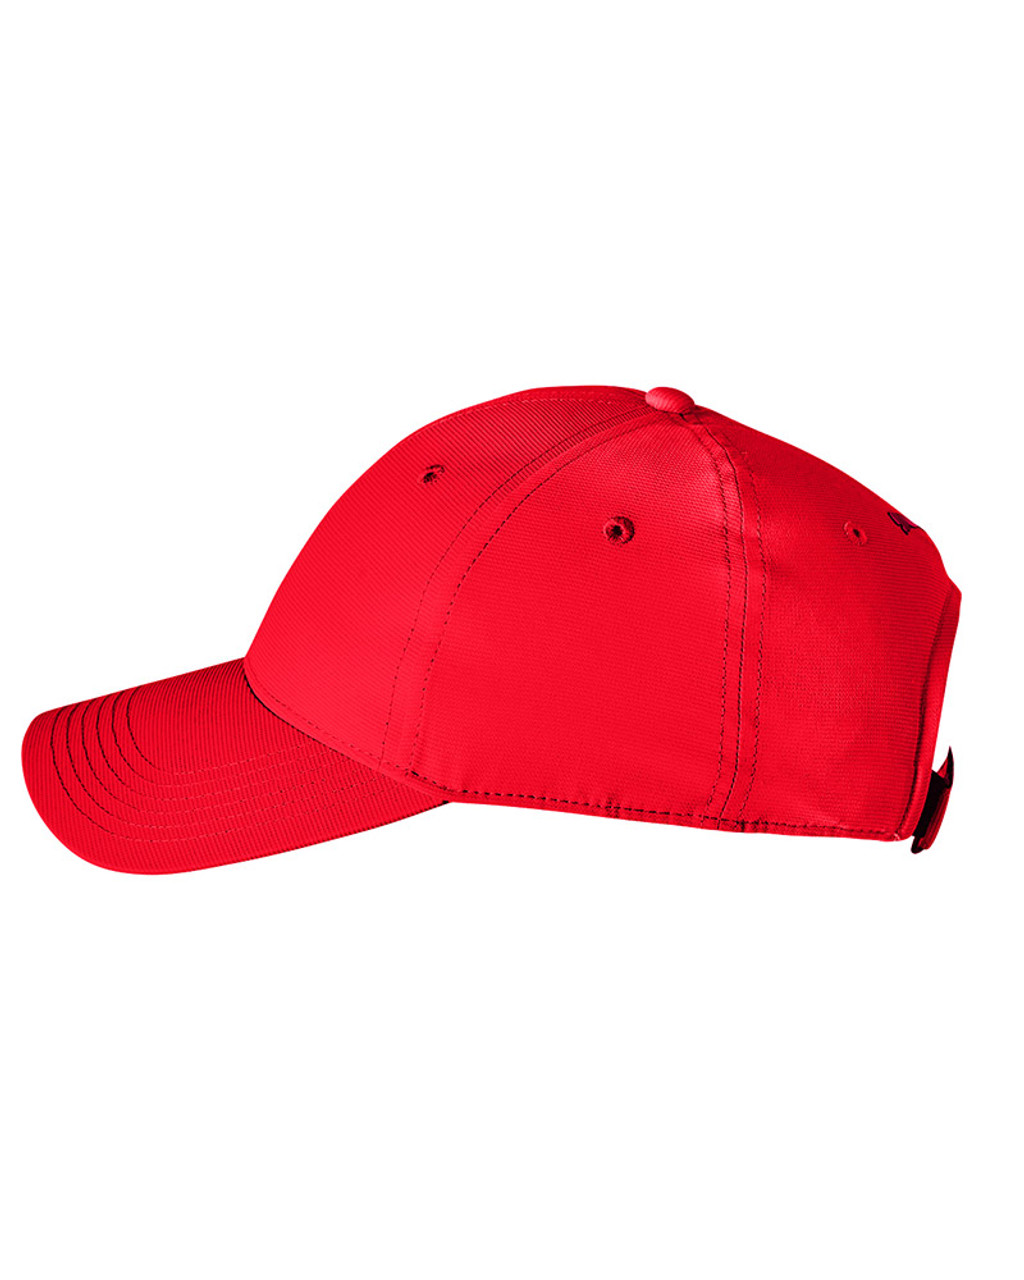 High Risk Red - side, 22673 Puma Golf Adult Pounce Adjustable Cap | Hardgoods.ca